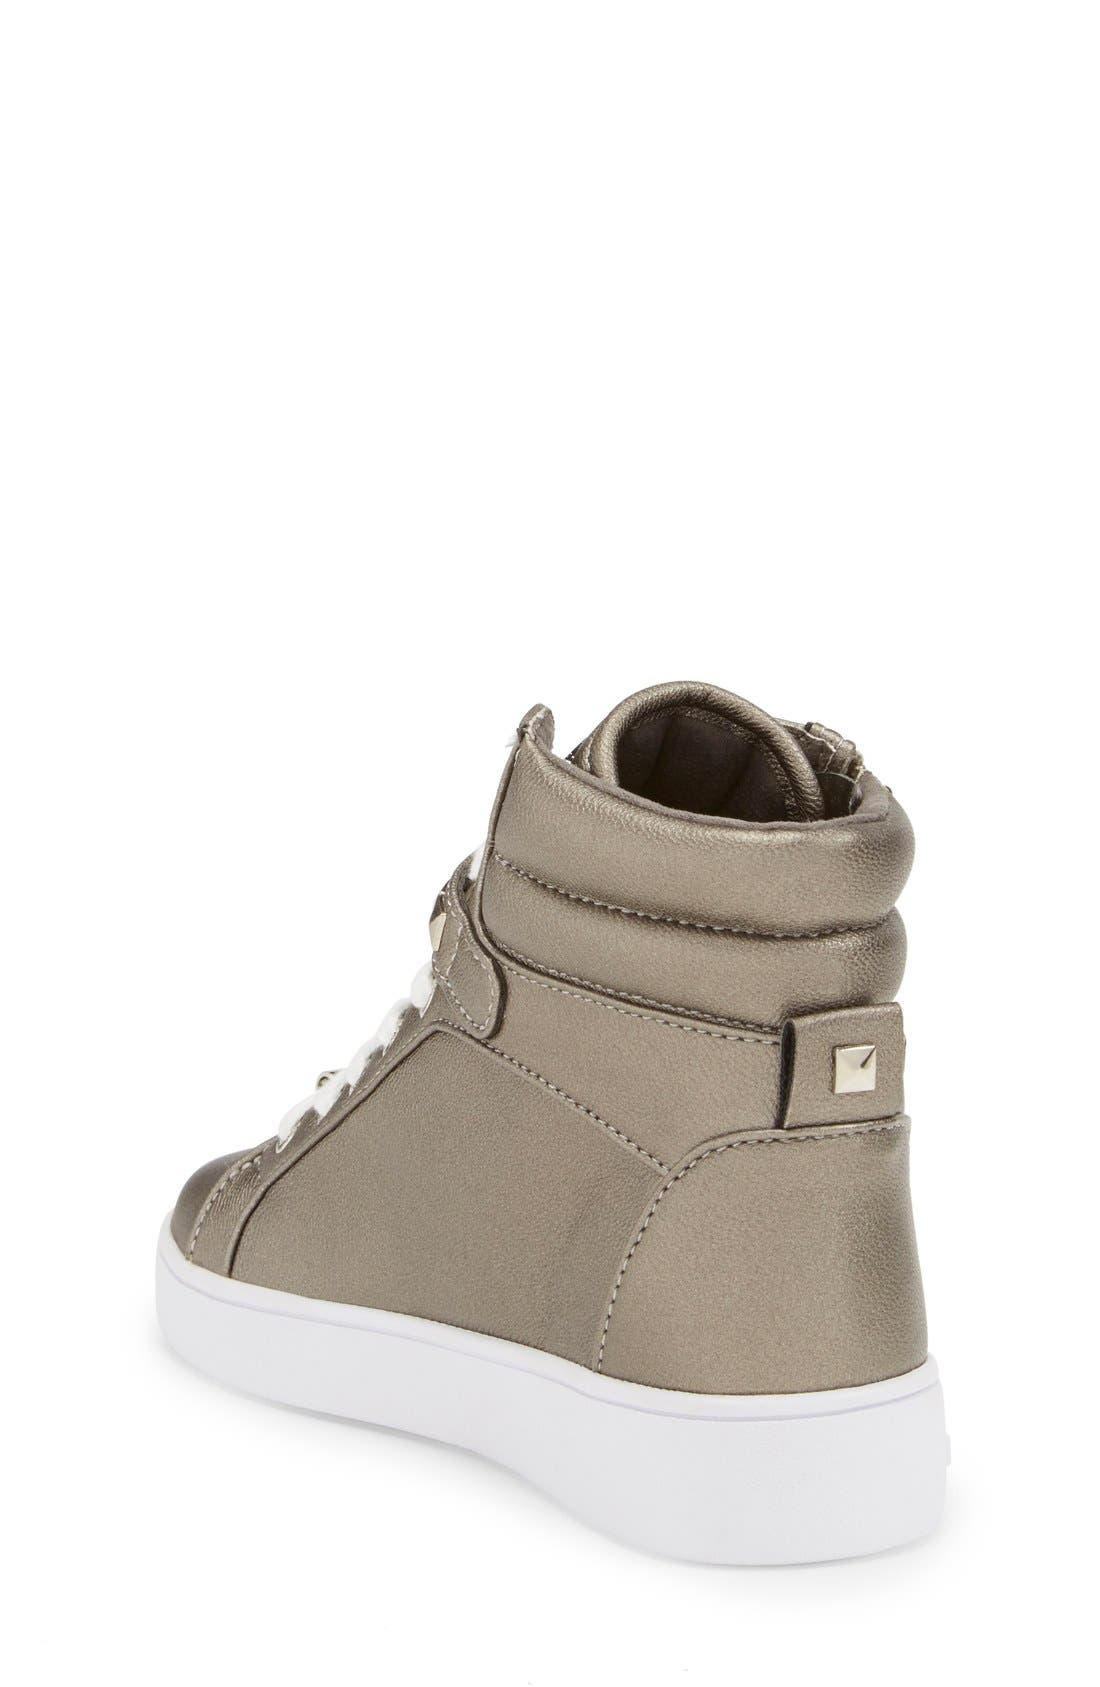 'Ivy Rory' High Top Sneaker,                             Alternate thumbnail 14, color,